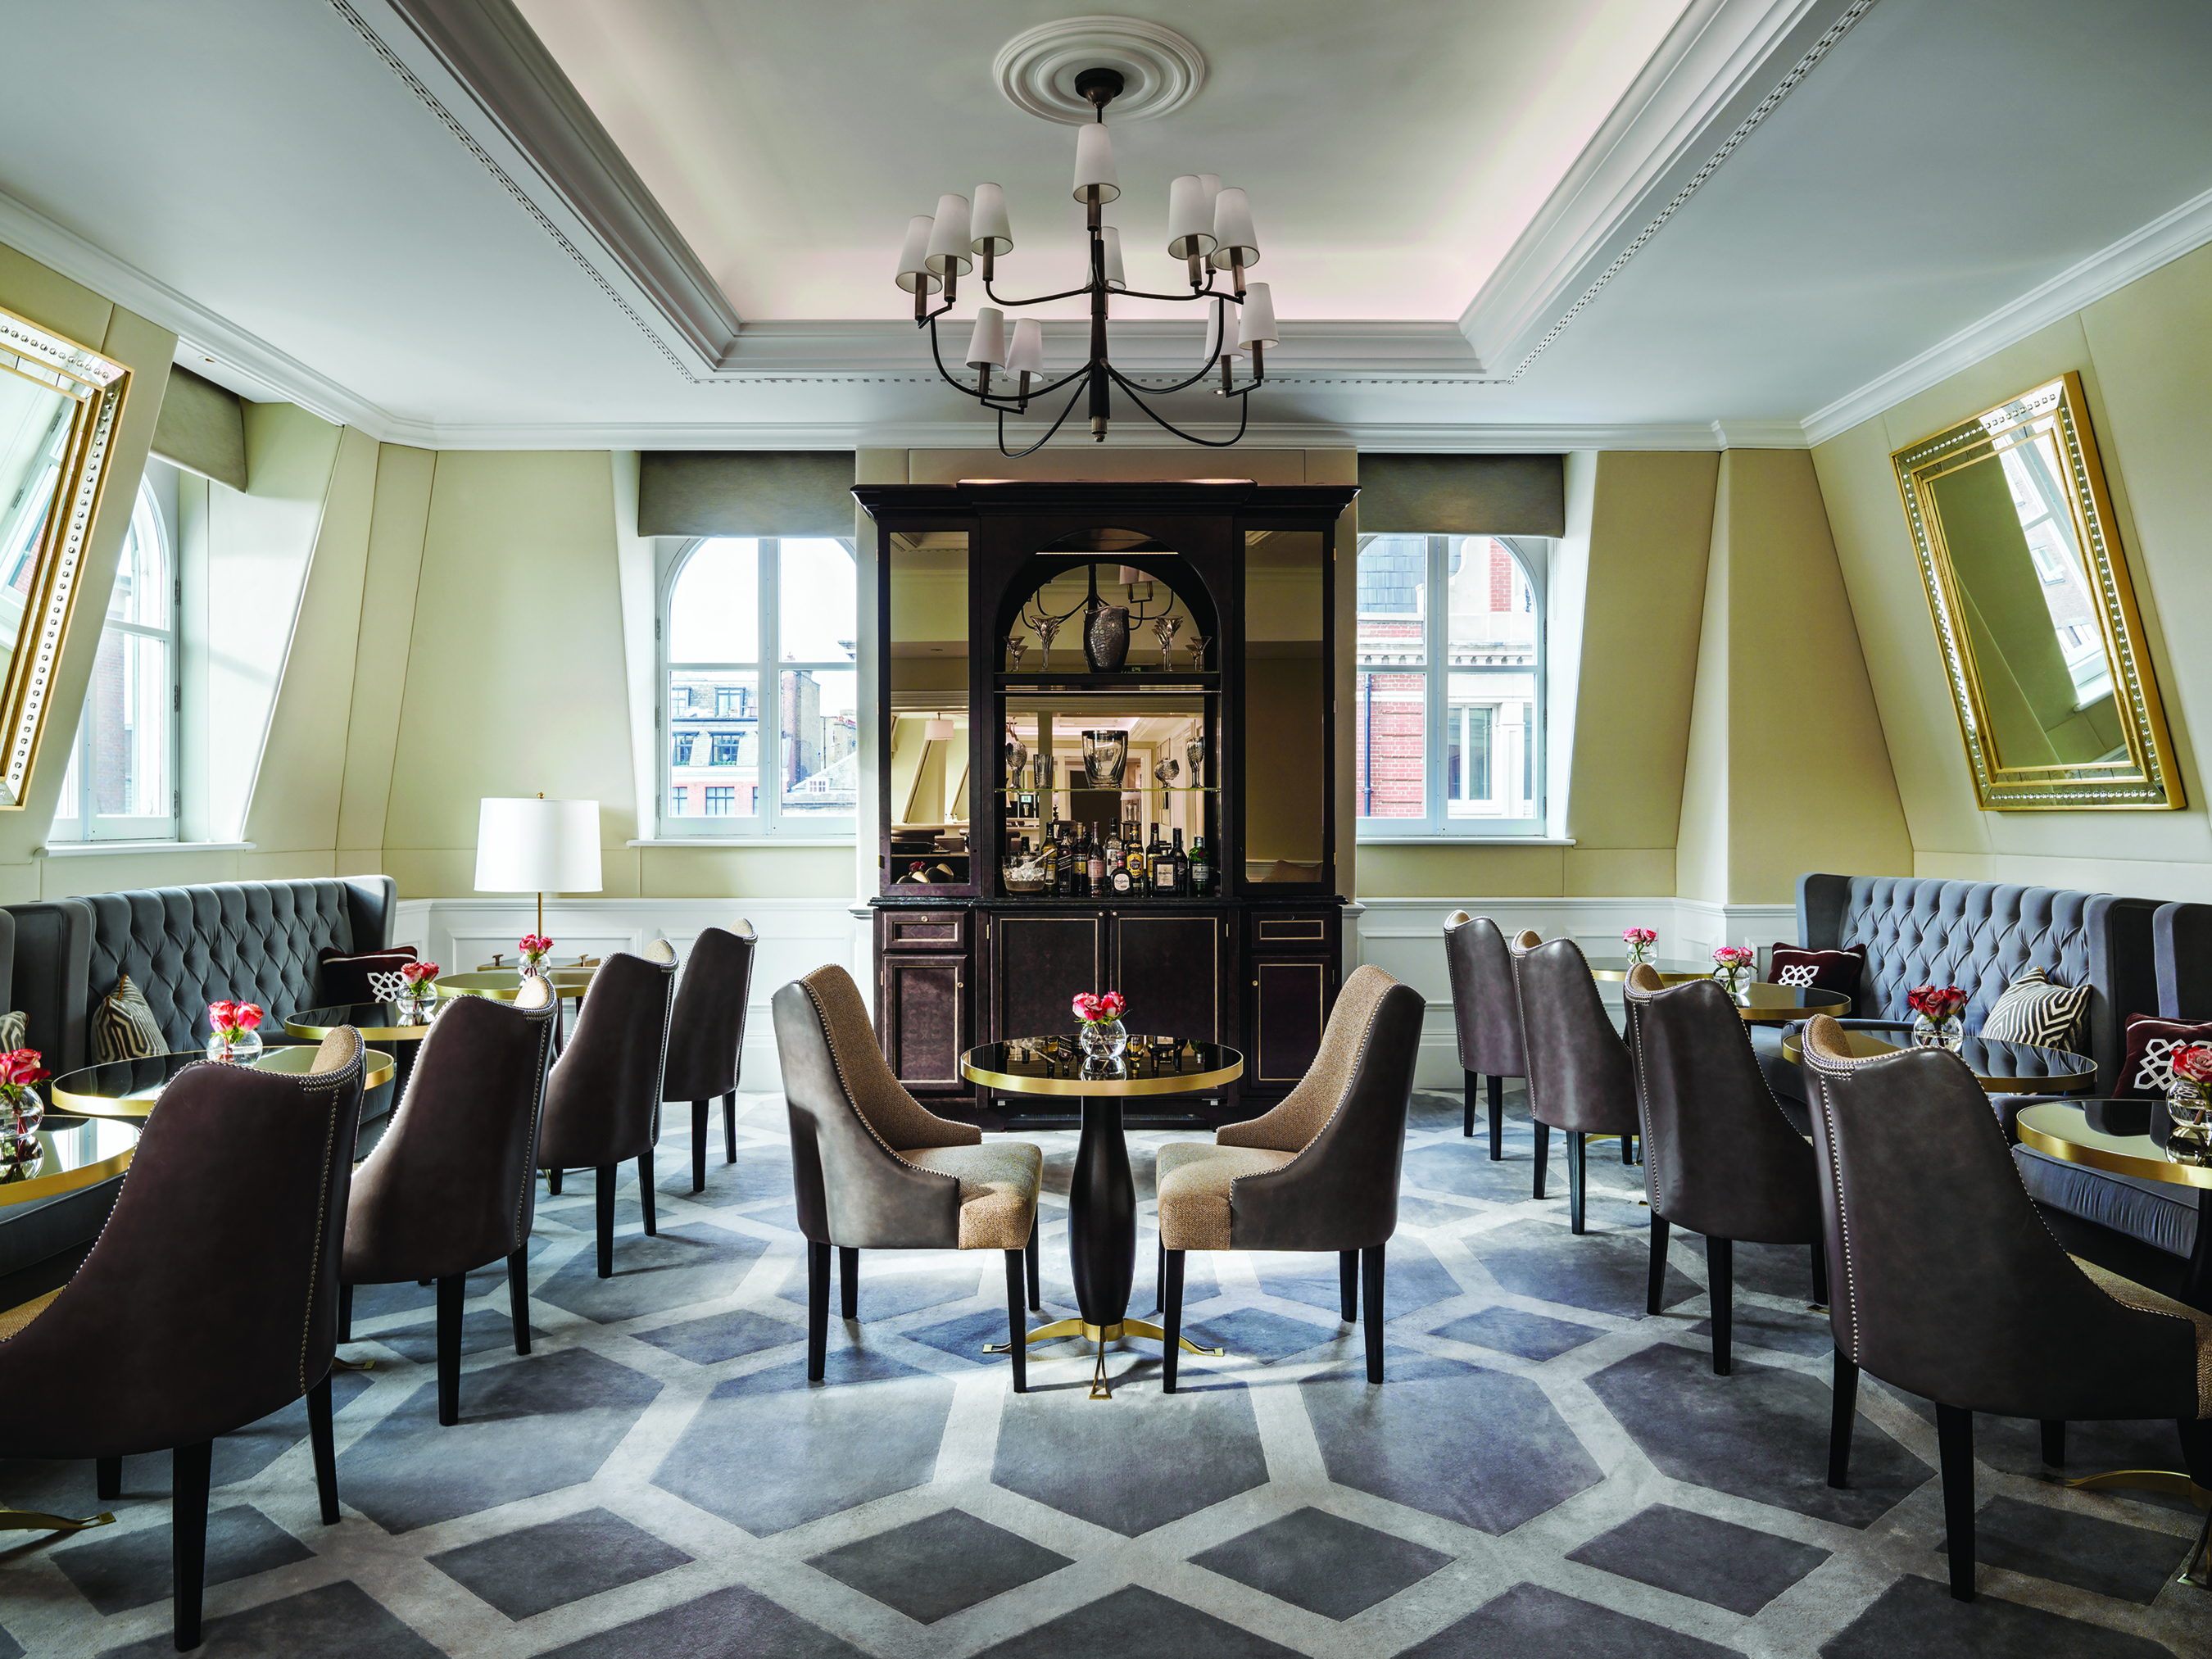 Discover The Best Hospitality Design Projects From Brabbu Contract  brabbu contract Discover The Best Hospitality Design Projects From Brabbu Contract The Langham Club Drawing Room